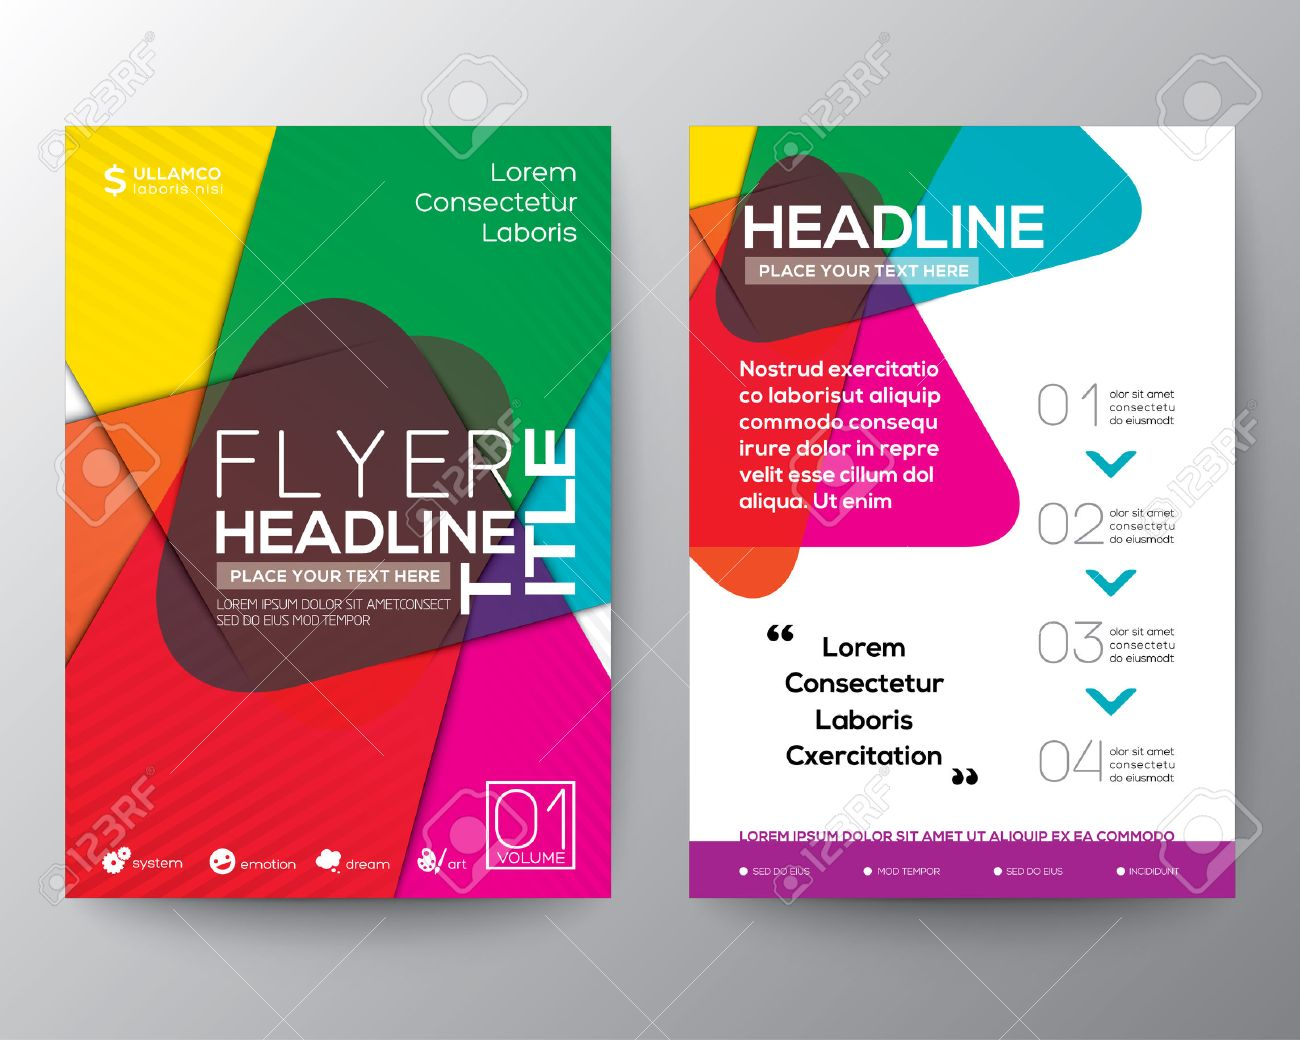 Flyer Design Ideas flyer flyer design ideas publishing creative flyers is the most impressive and popular way of advertising professional postcard leaflet flyer Abstract Colorful Brochure Flyer Design Layout Vector Template Abstract Colorful Brochure Flyer Design Layout Vector Template